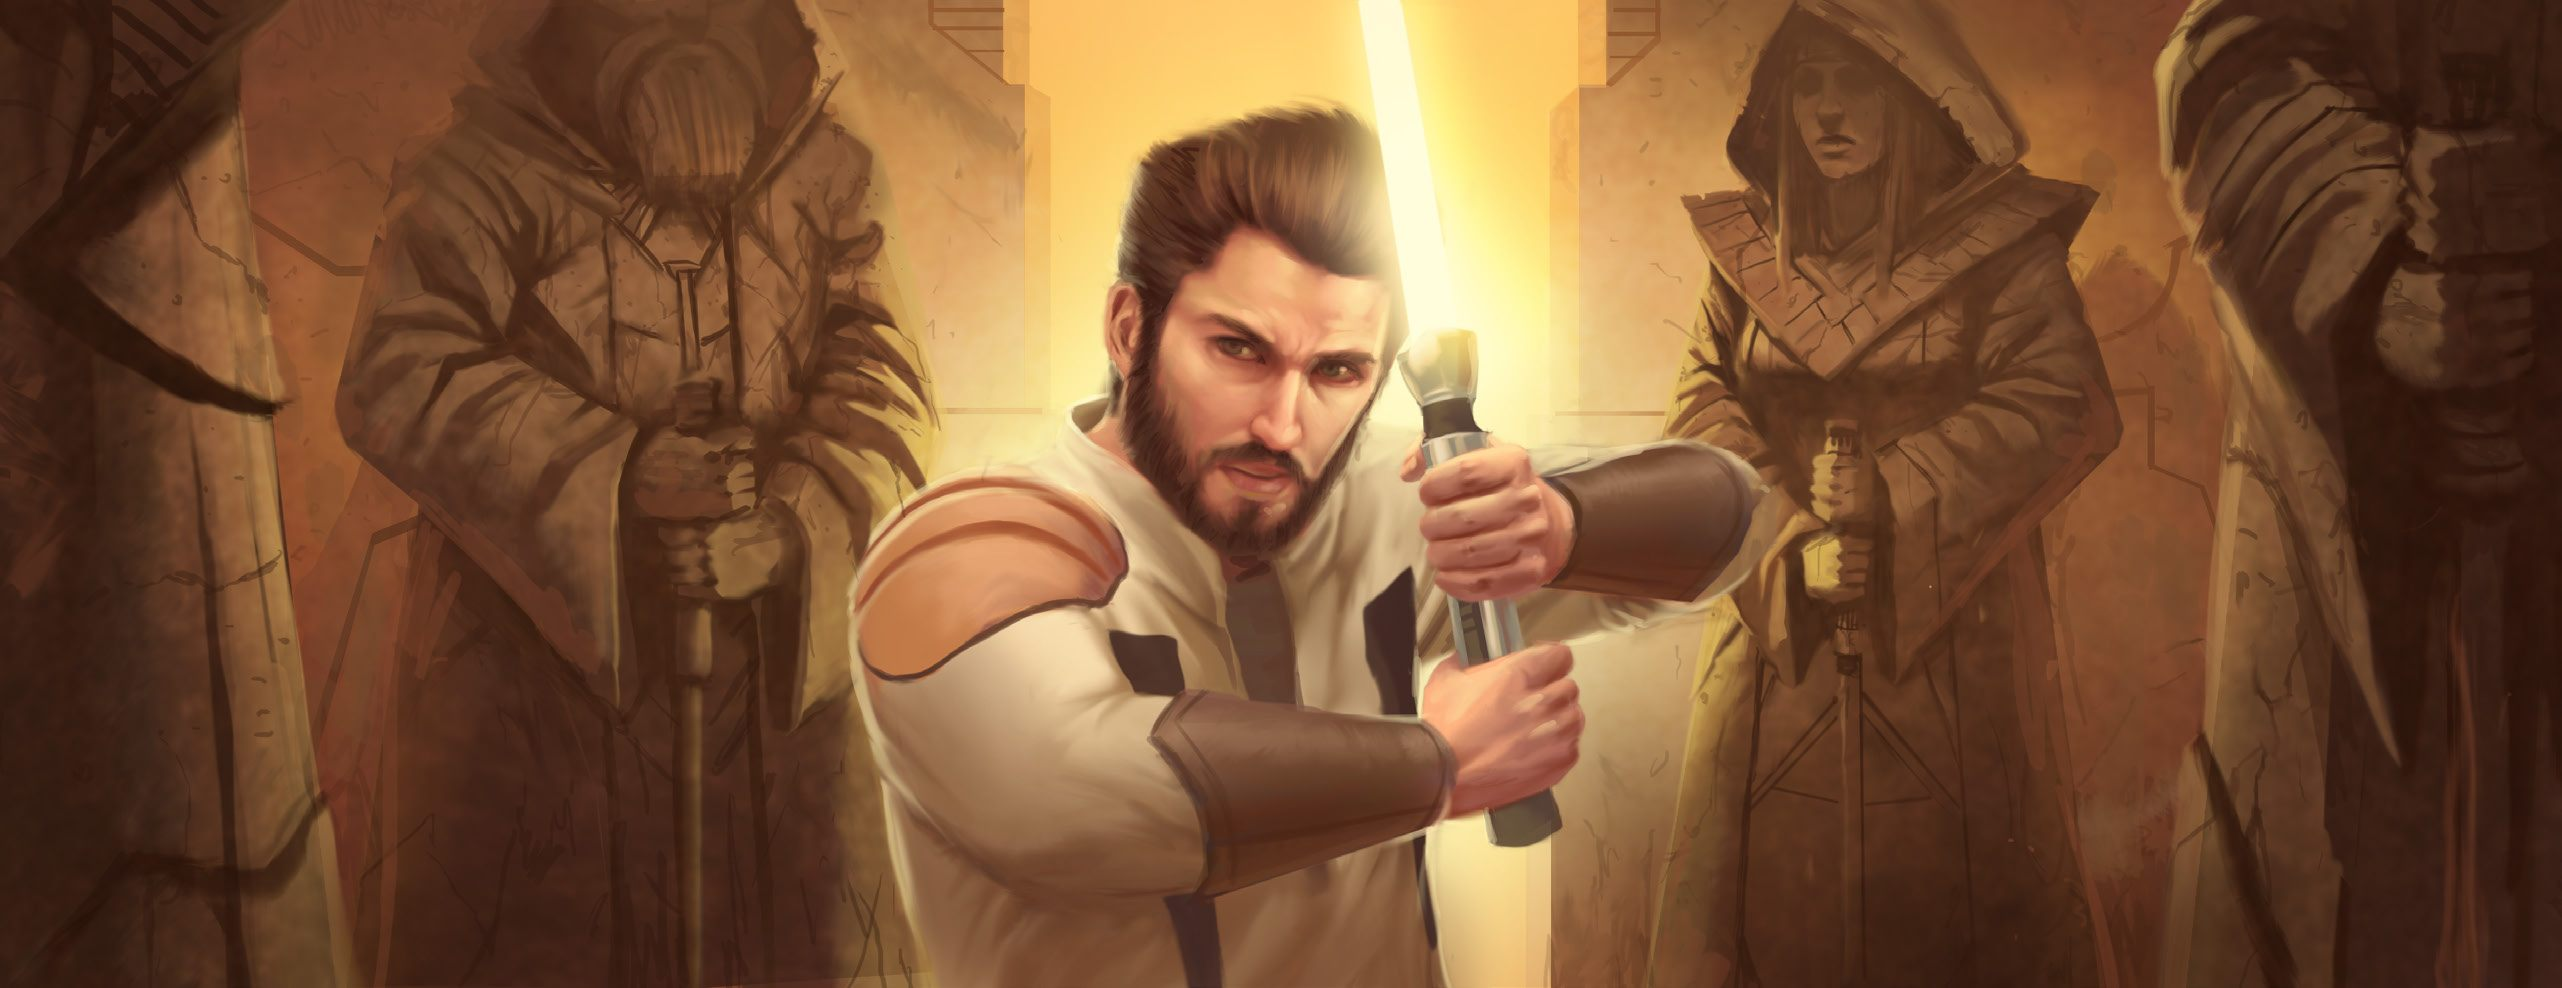 Kyle Katarn - Star Wars